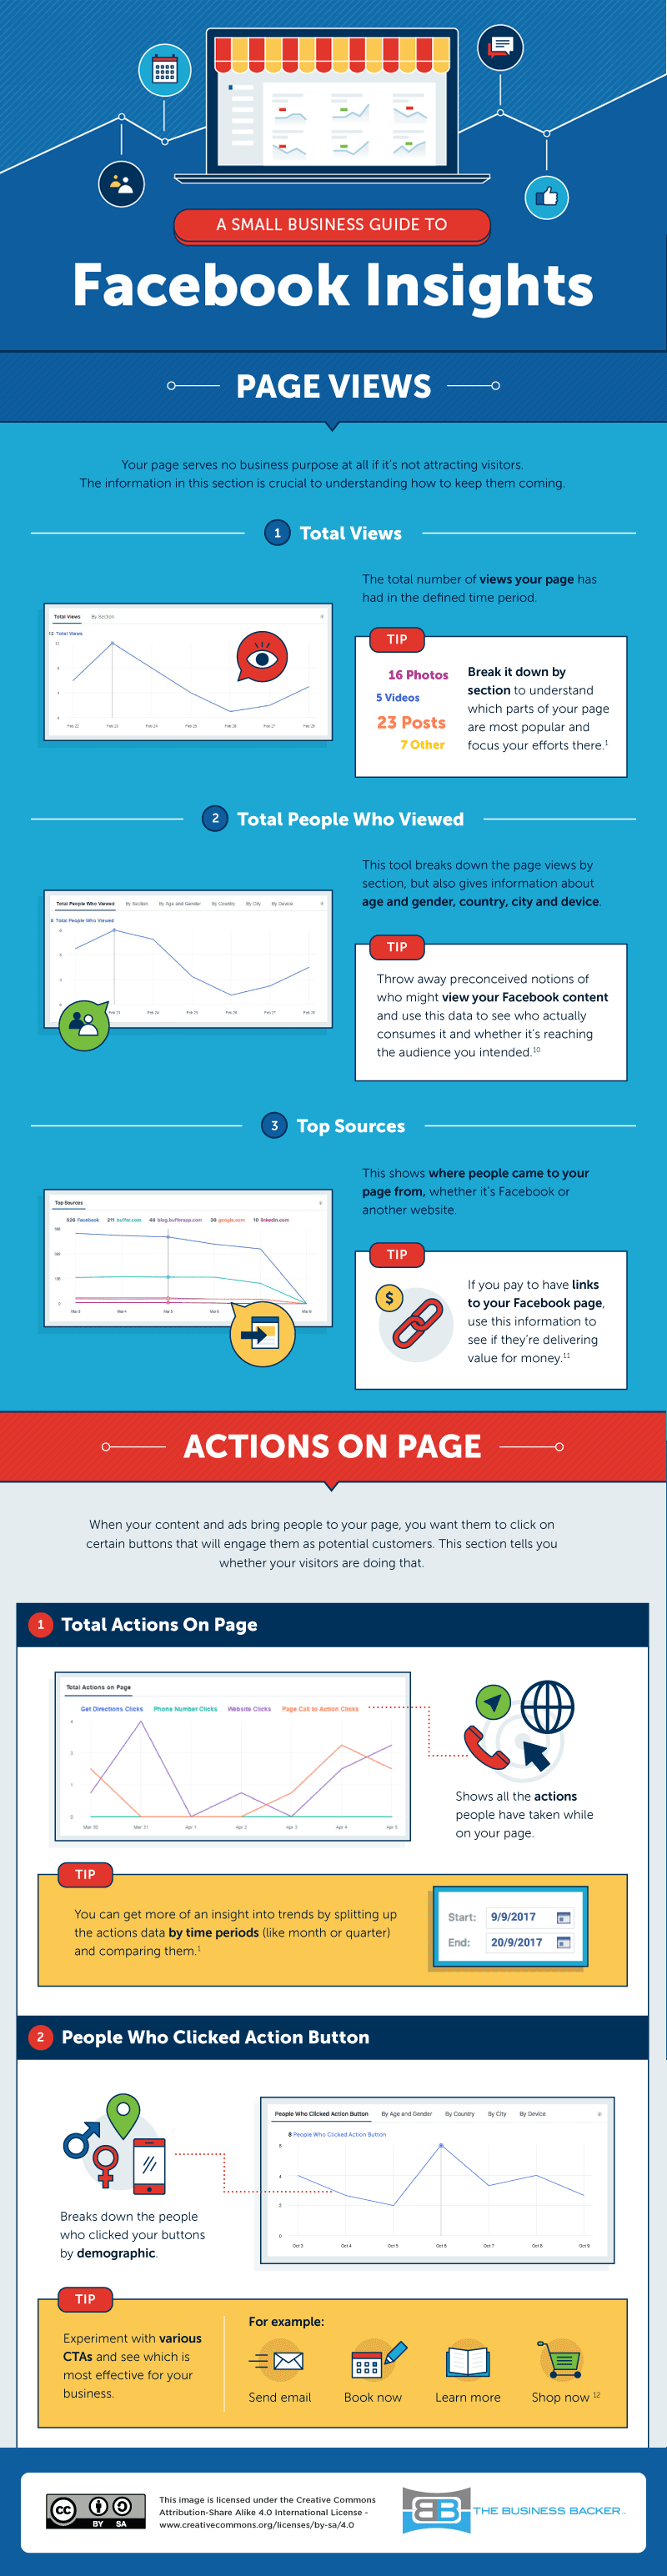 Wondering how to use Facebook Insights for your small business? Here's how to know what's really working on Facebook. Infographic 4: Page Views and Actions on Page.